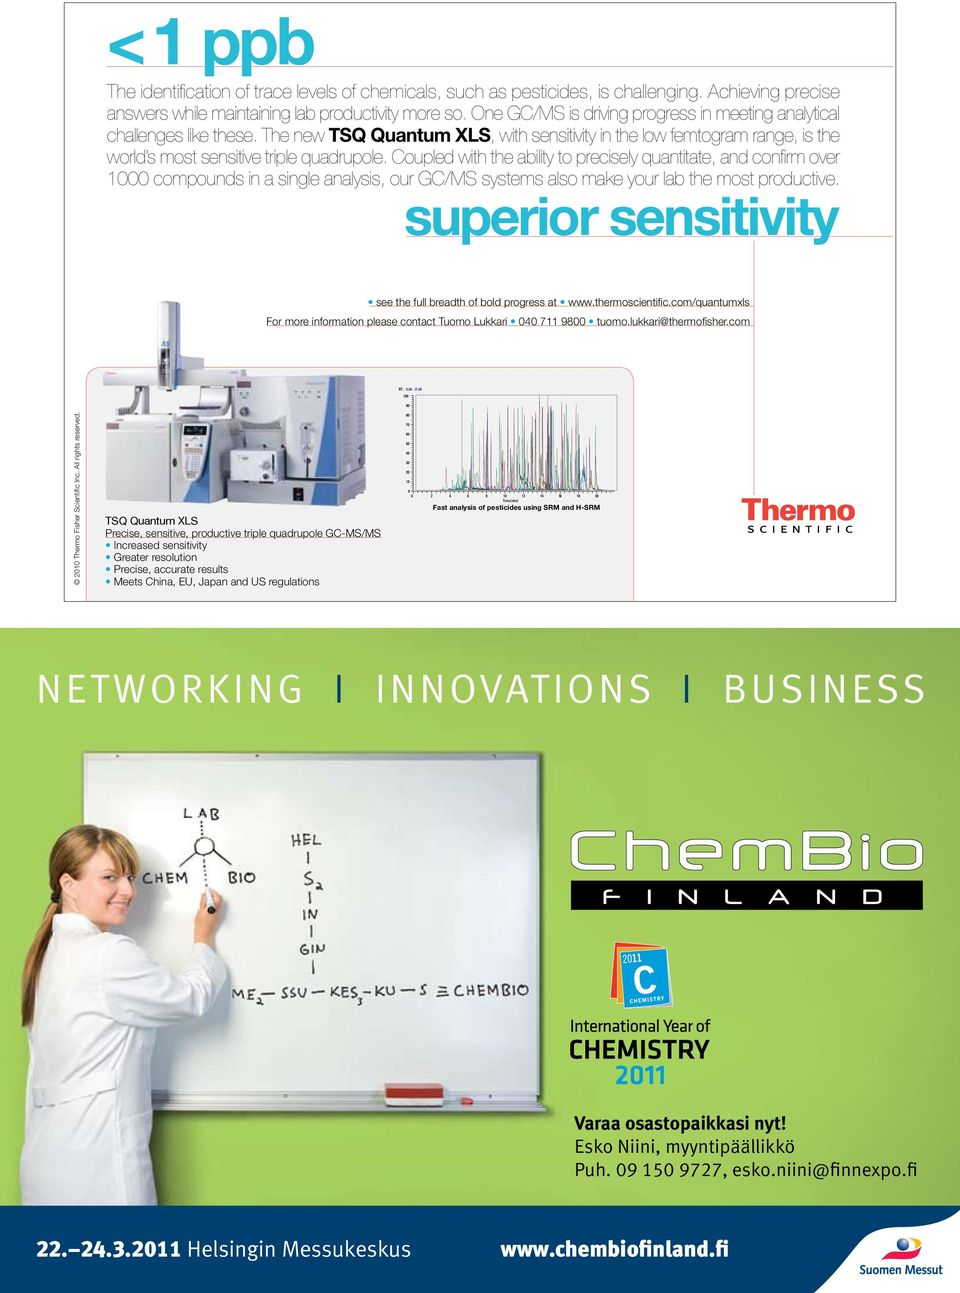 Coupled with the ability to precisely quantitate, and confirm over 1000 compounds in a single analysis, our GC/MS systems also make your lab the most productive.